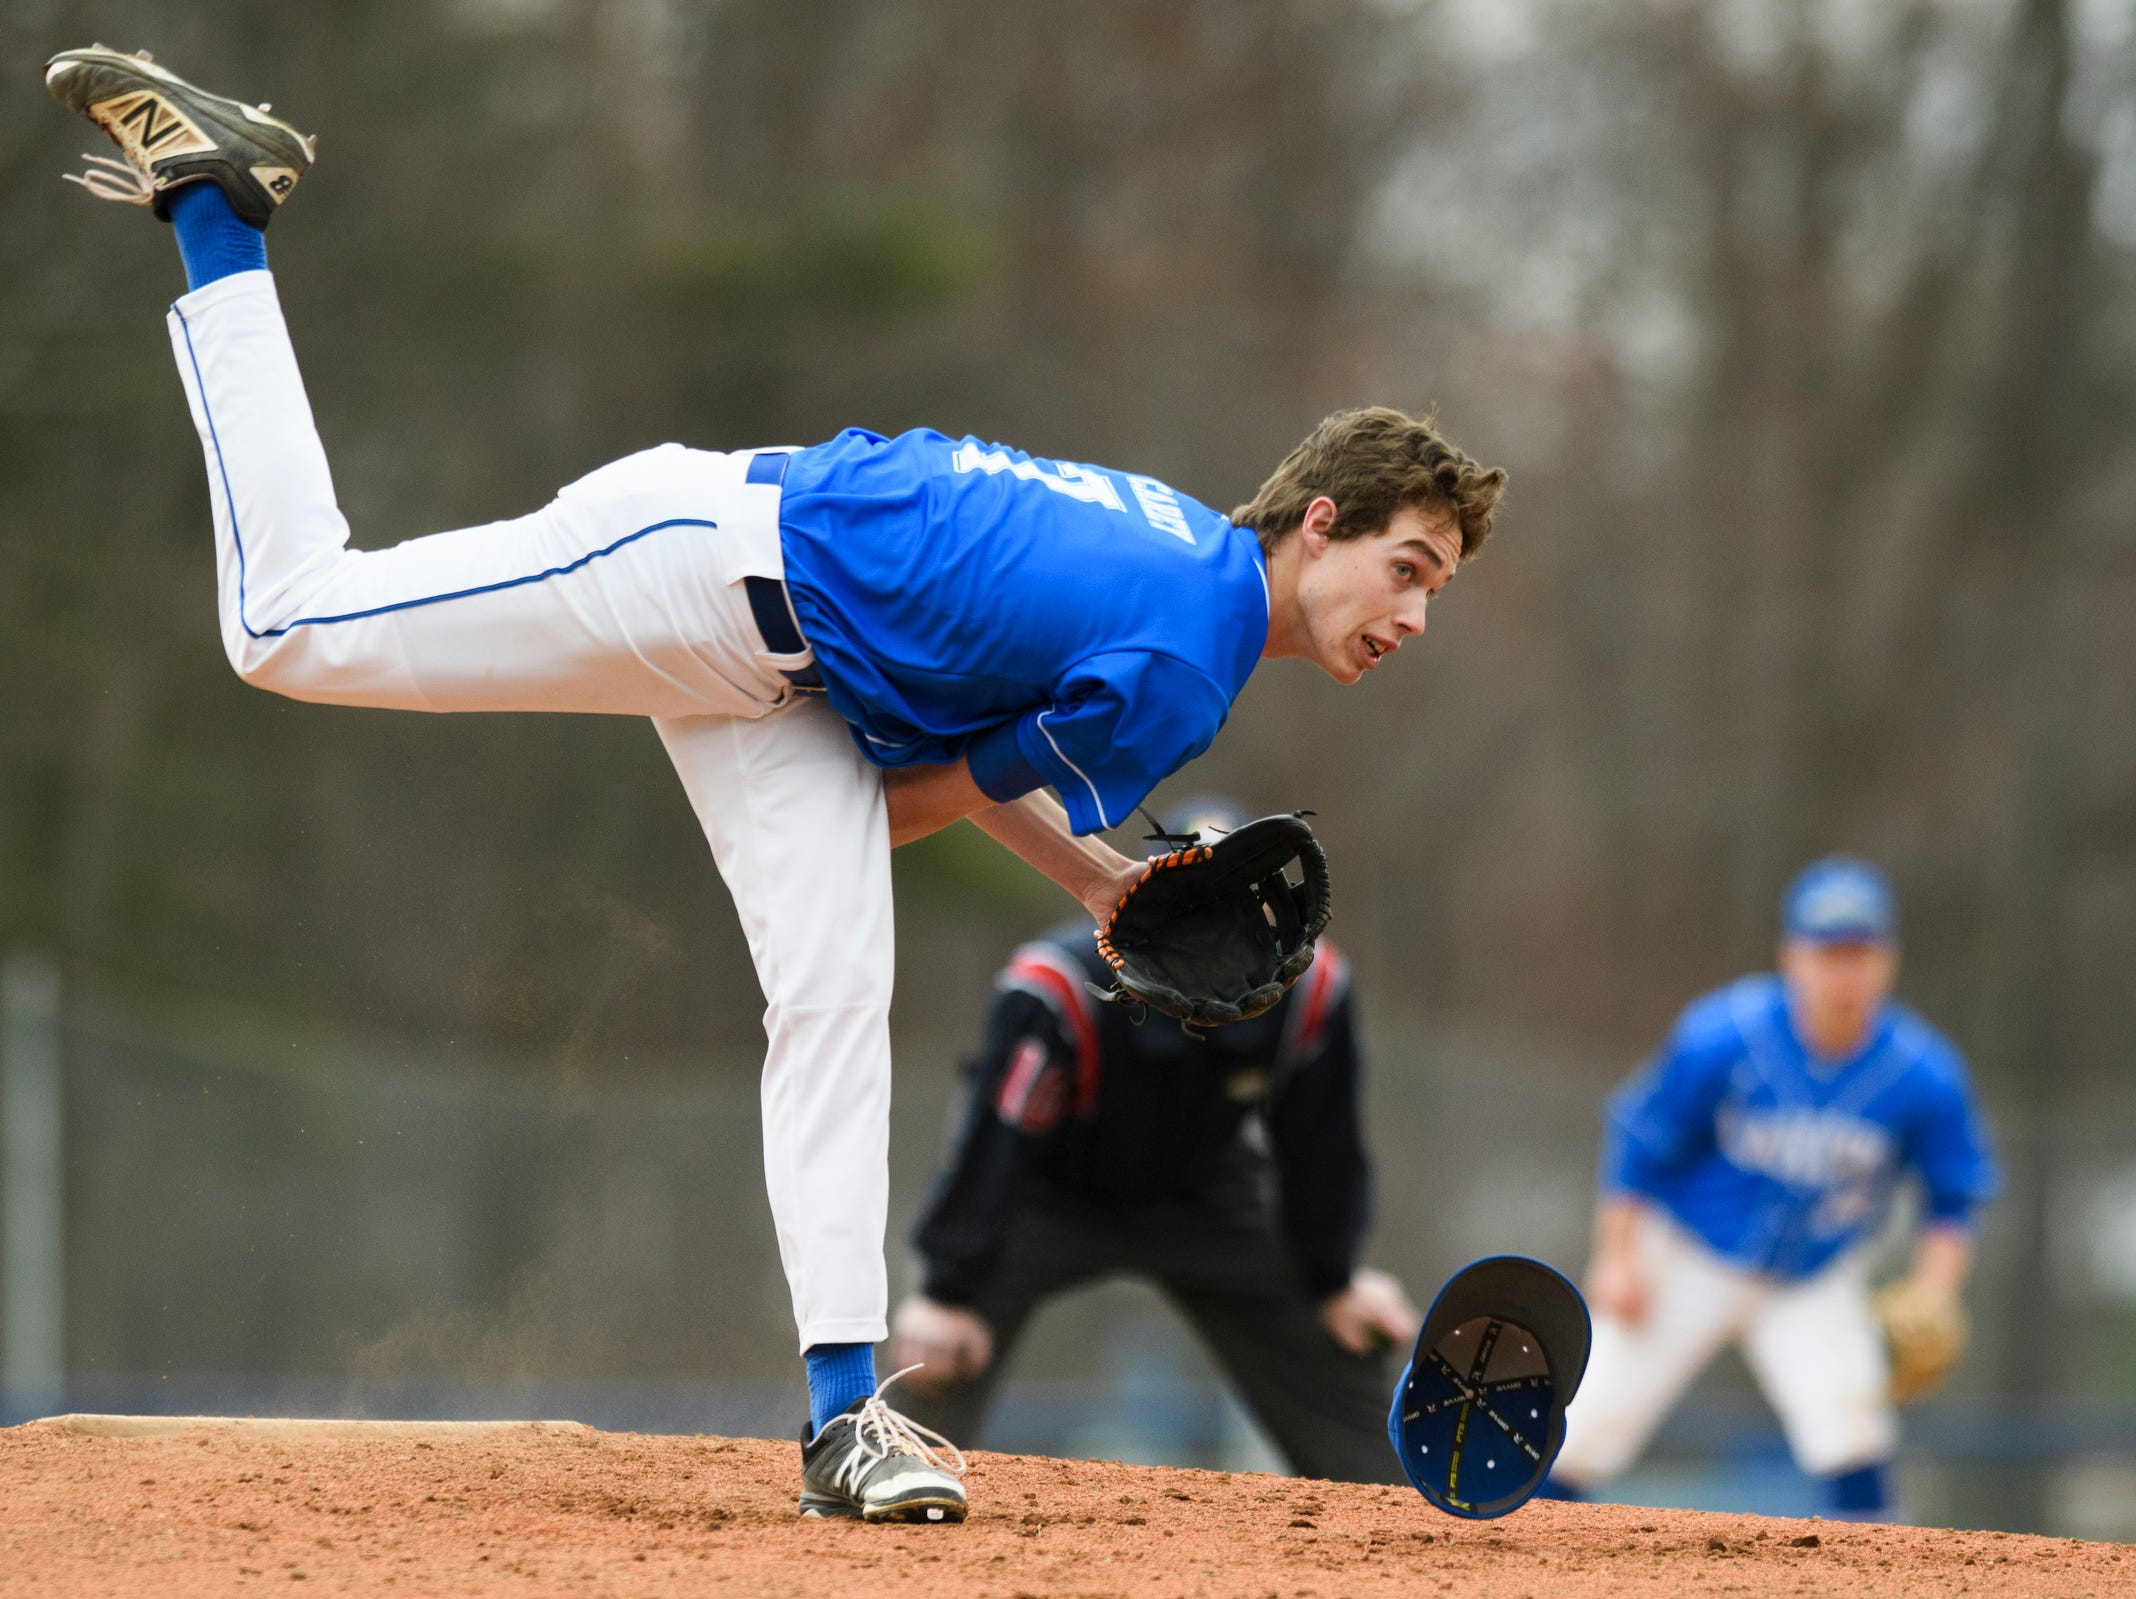 Colchester pitcher Chase Carey (7) loses his hat as he delivers a pitch during the boys baseball game between the South Burlington Wolves and the Colchester Lakers at Colchester high school on Thursday afternoon April 18, 2019 in Colchester, Vermont.